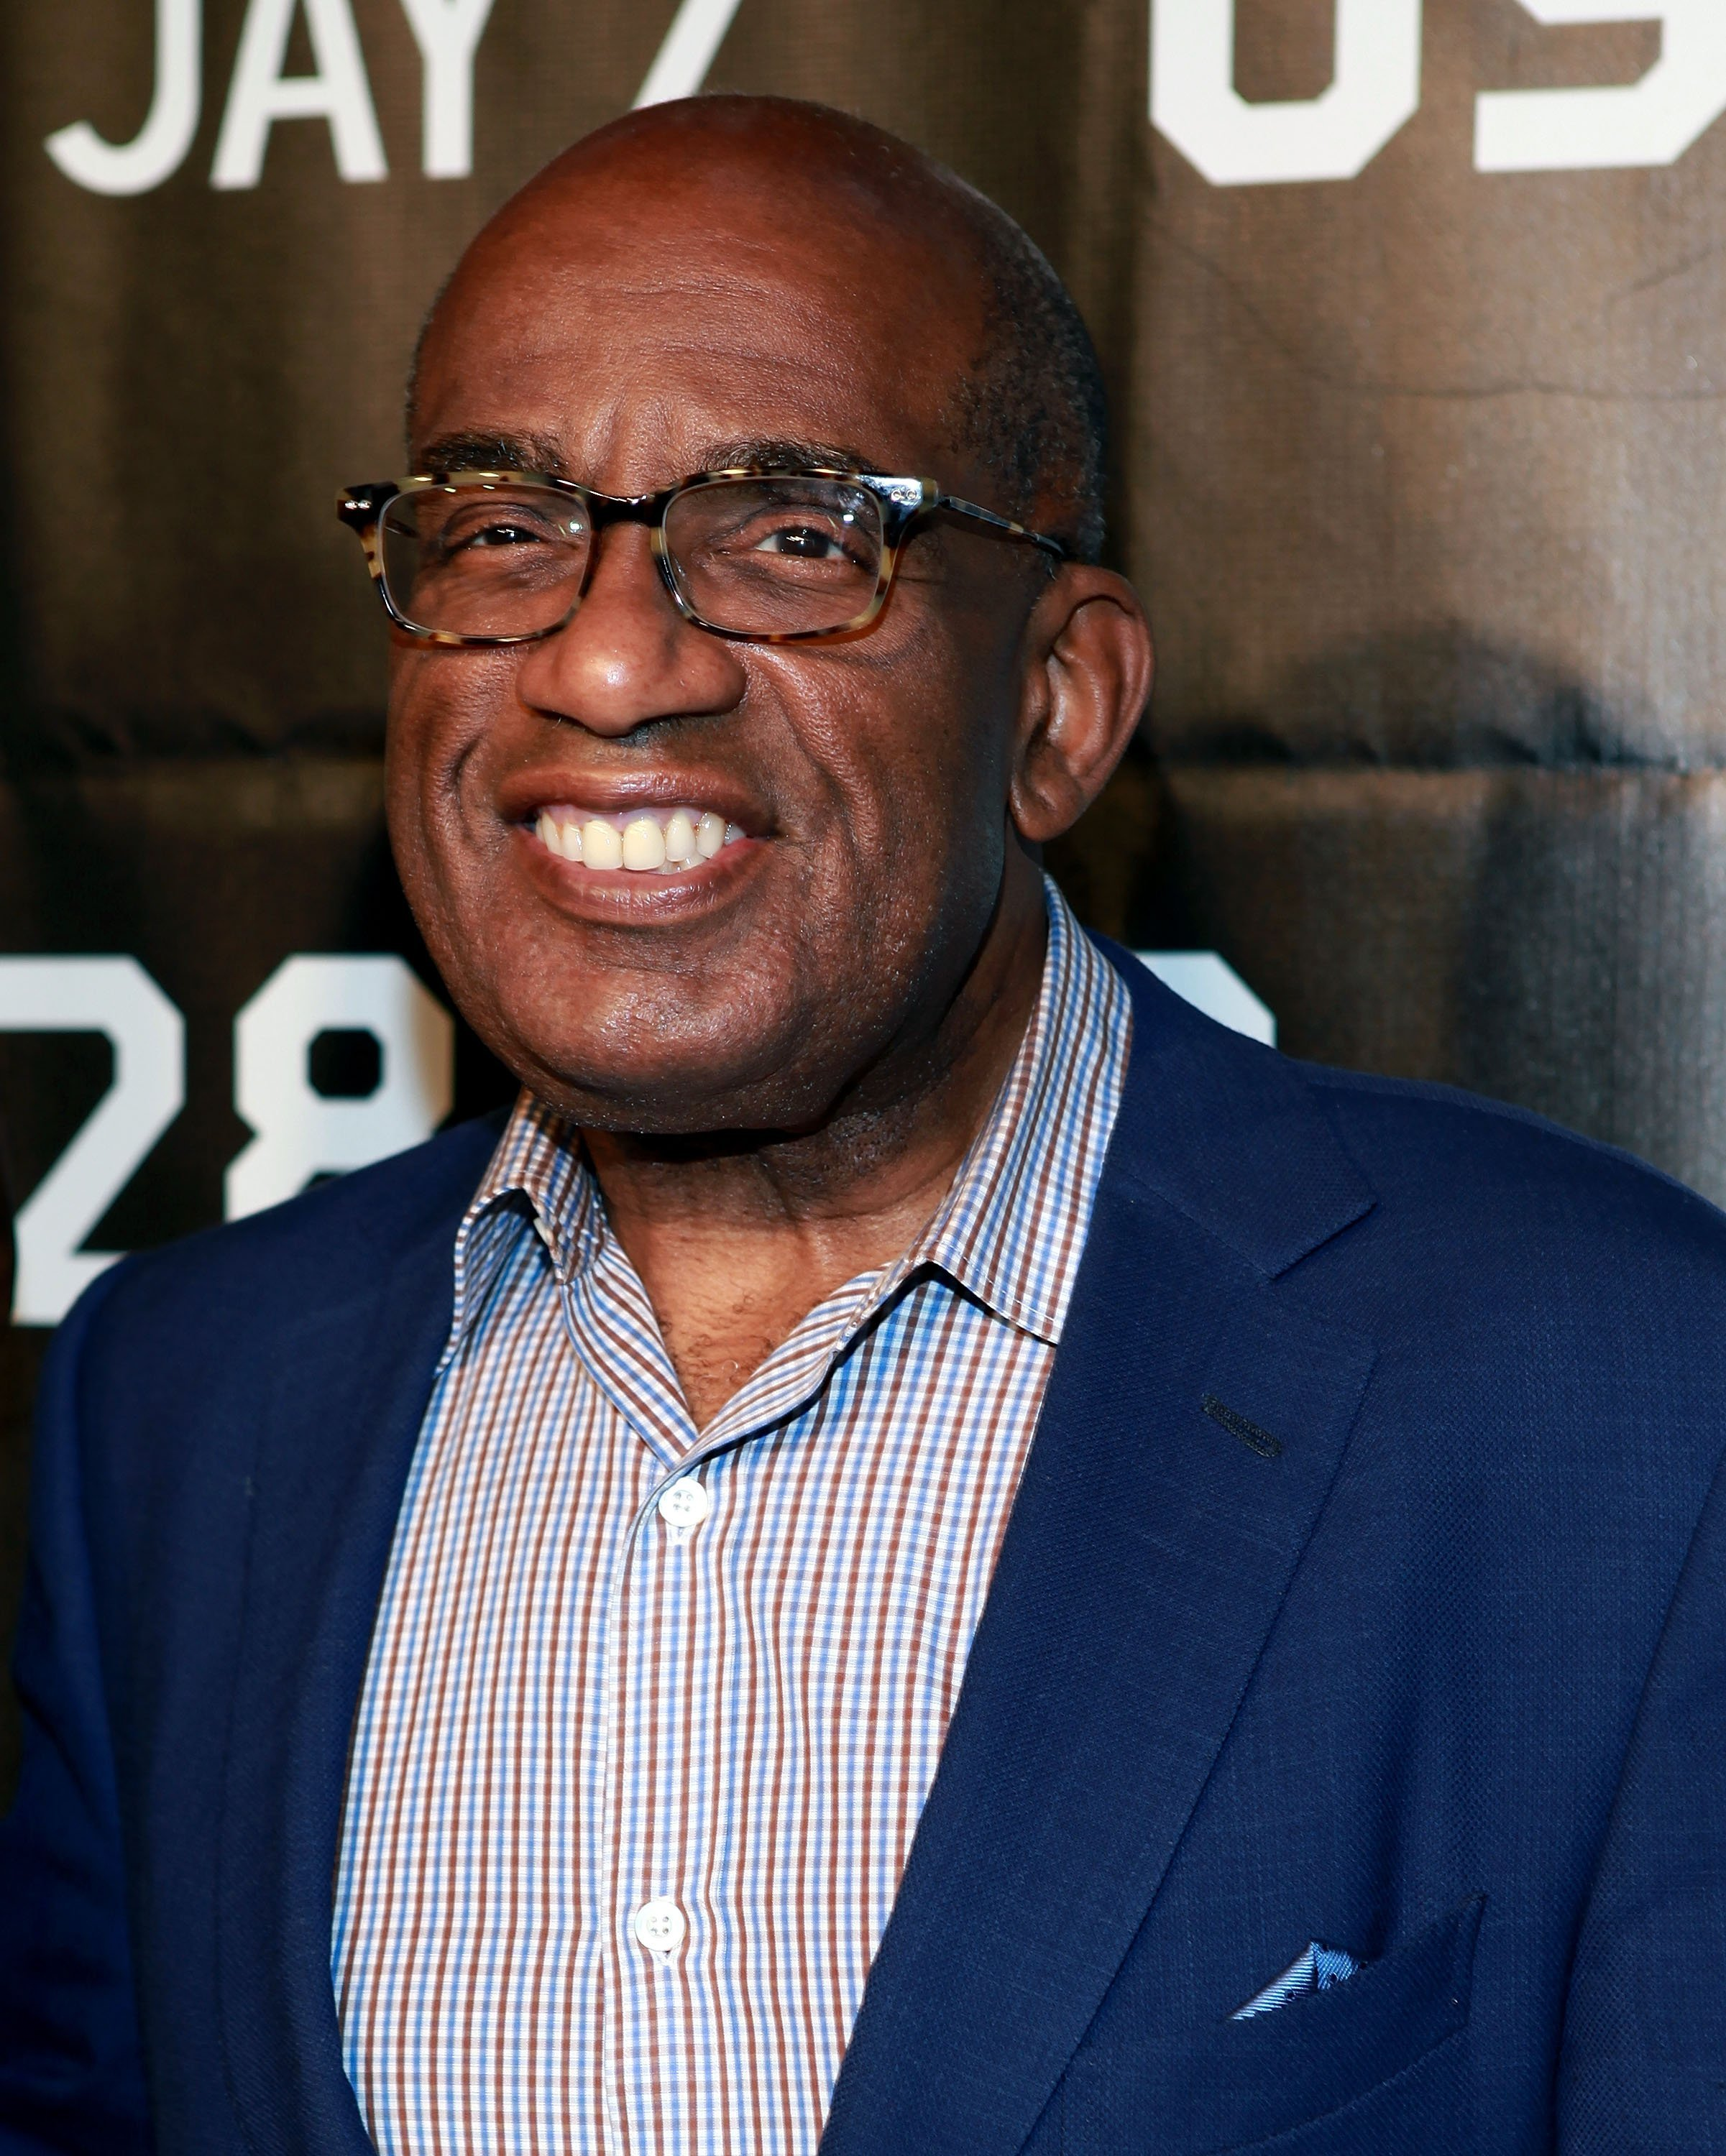 Al Roker attending Jay-Z's concert in 2012. | Photo: Getty Images